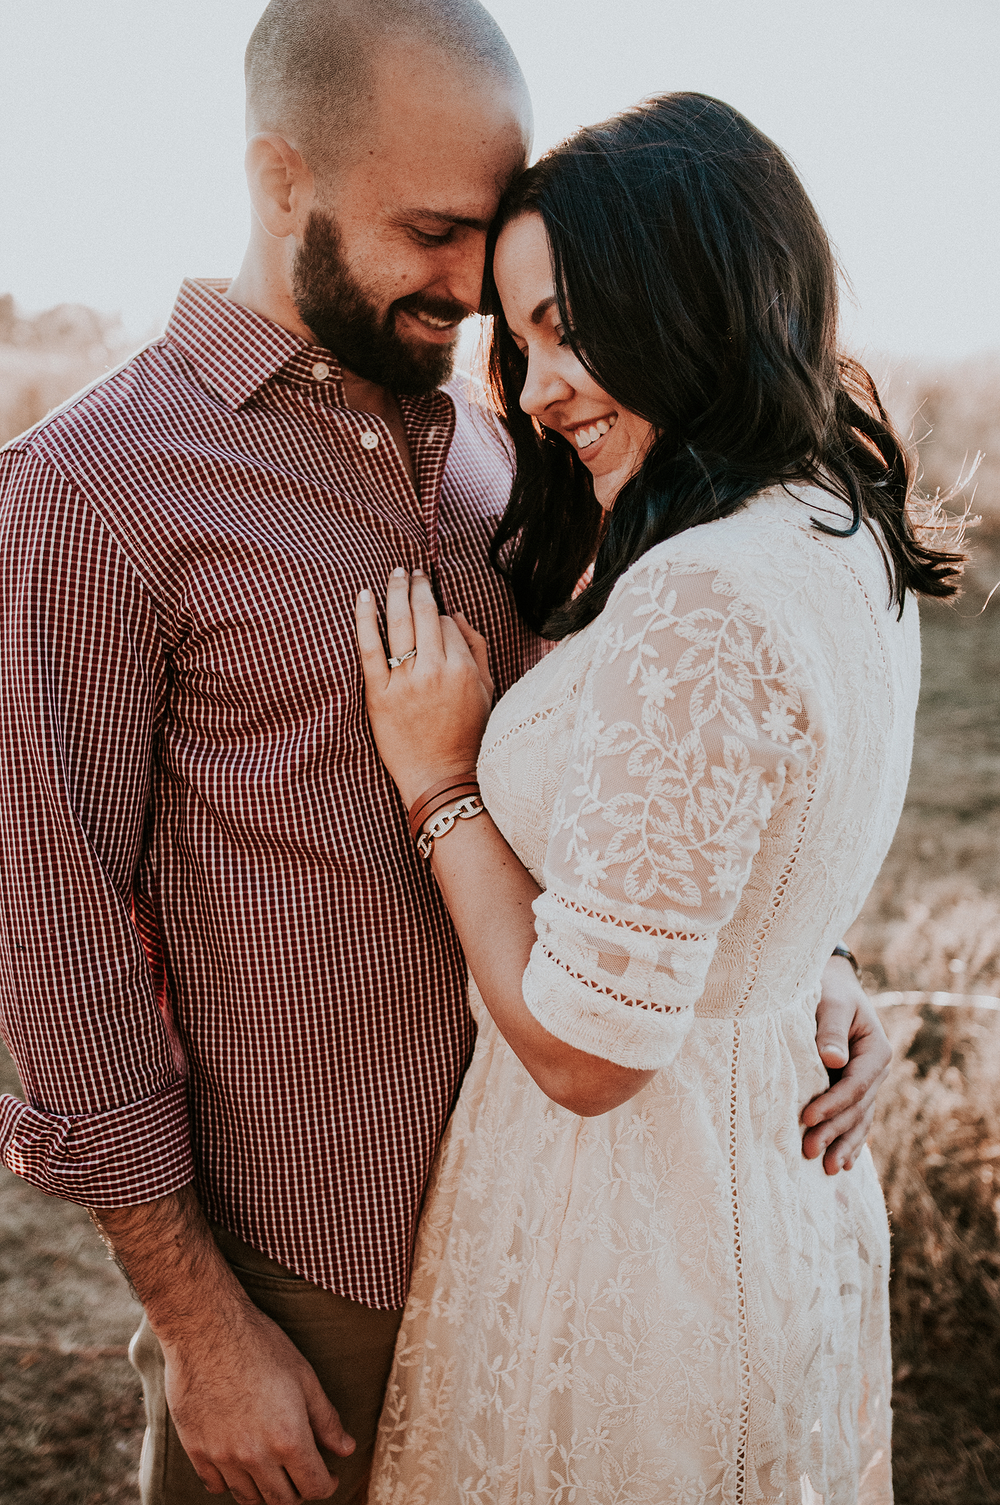 kaylie-sirek-what-to-wear-engagment-session-photos-photography-nebraska-style-ideas-engaged-outfit-ootd